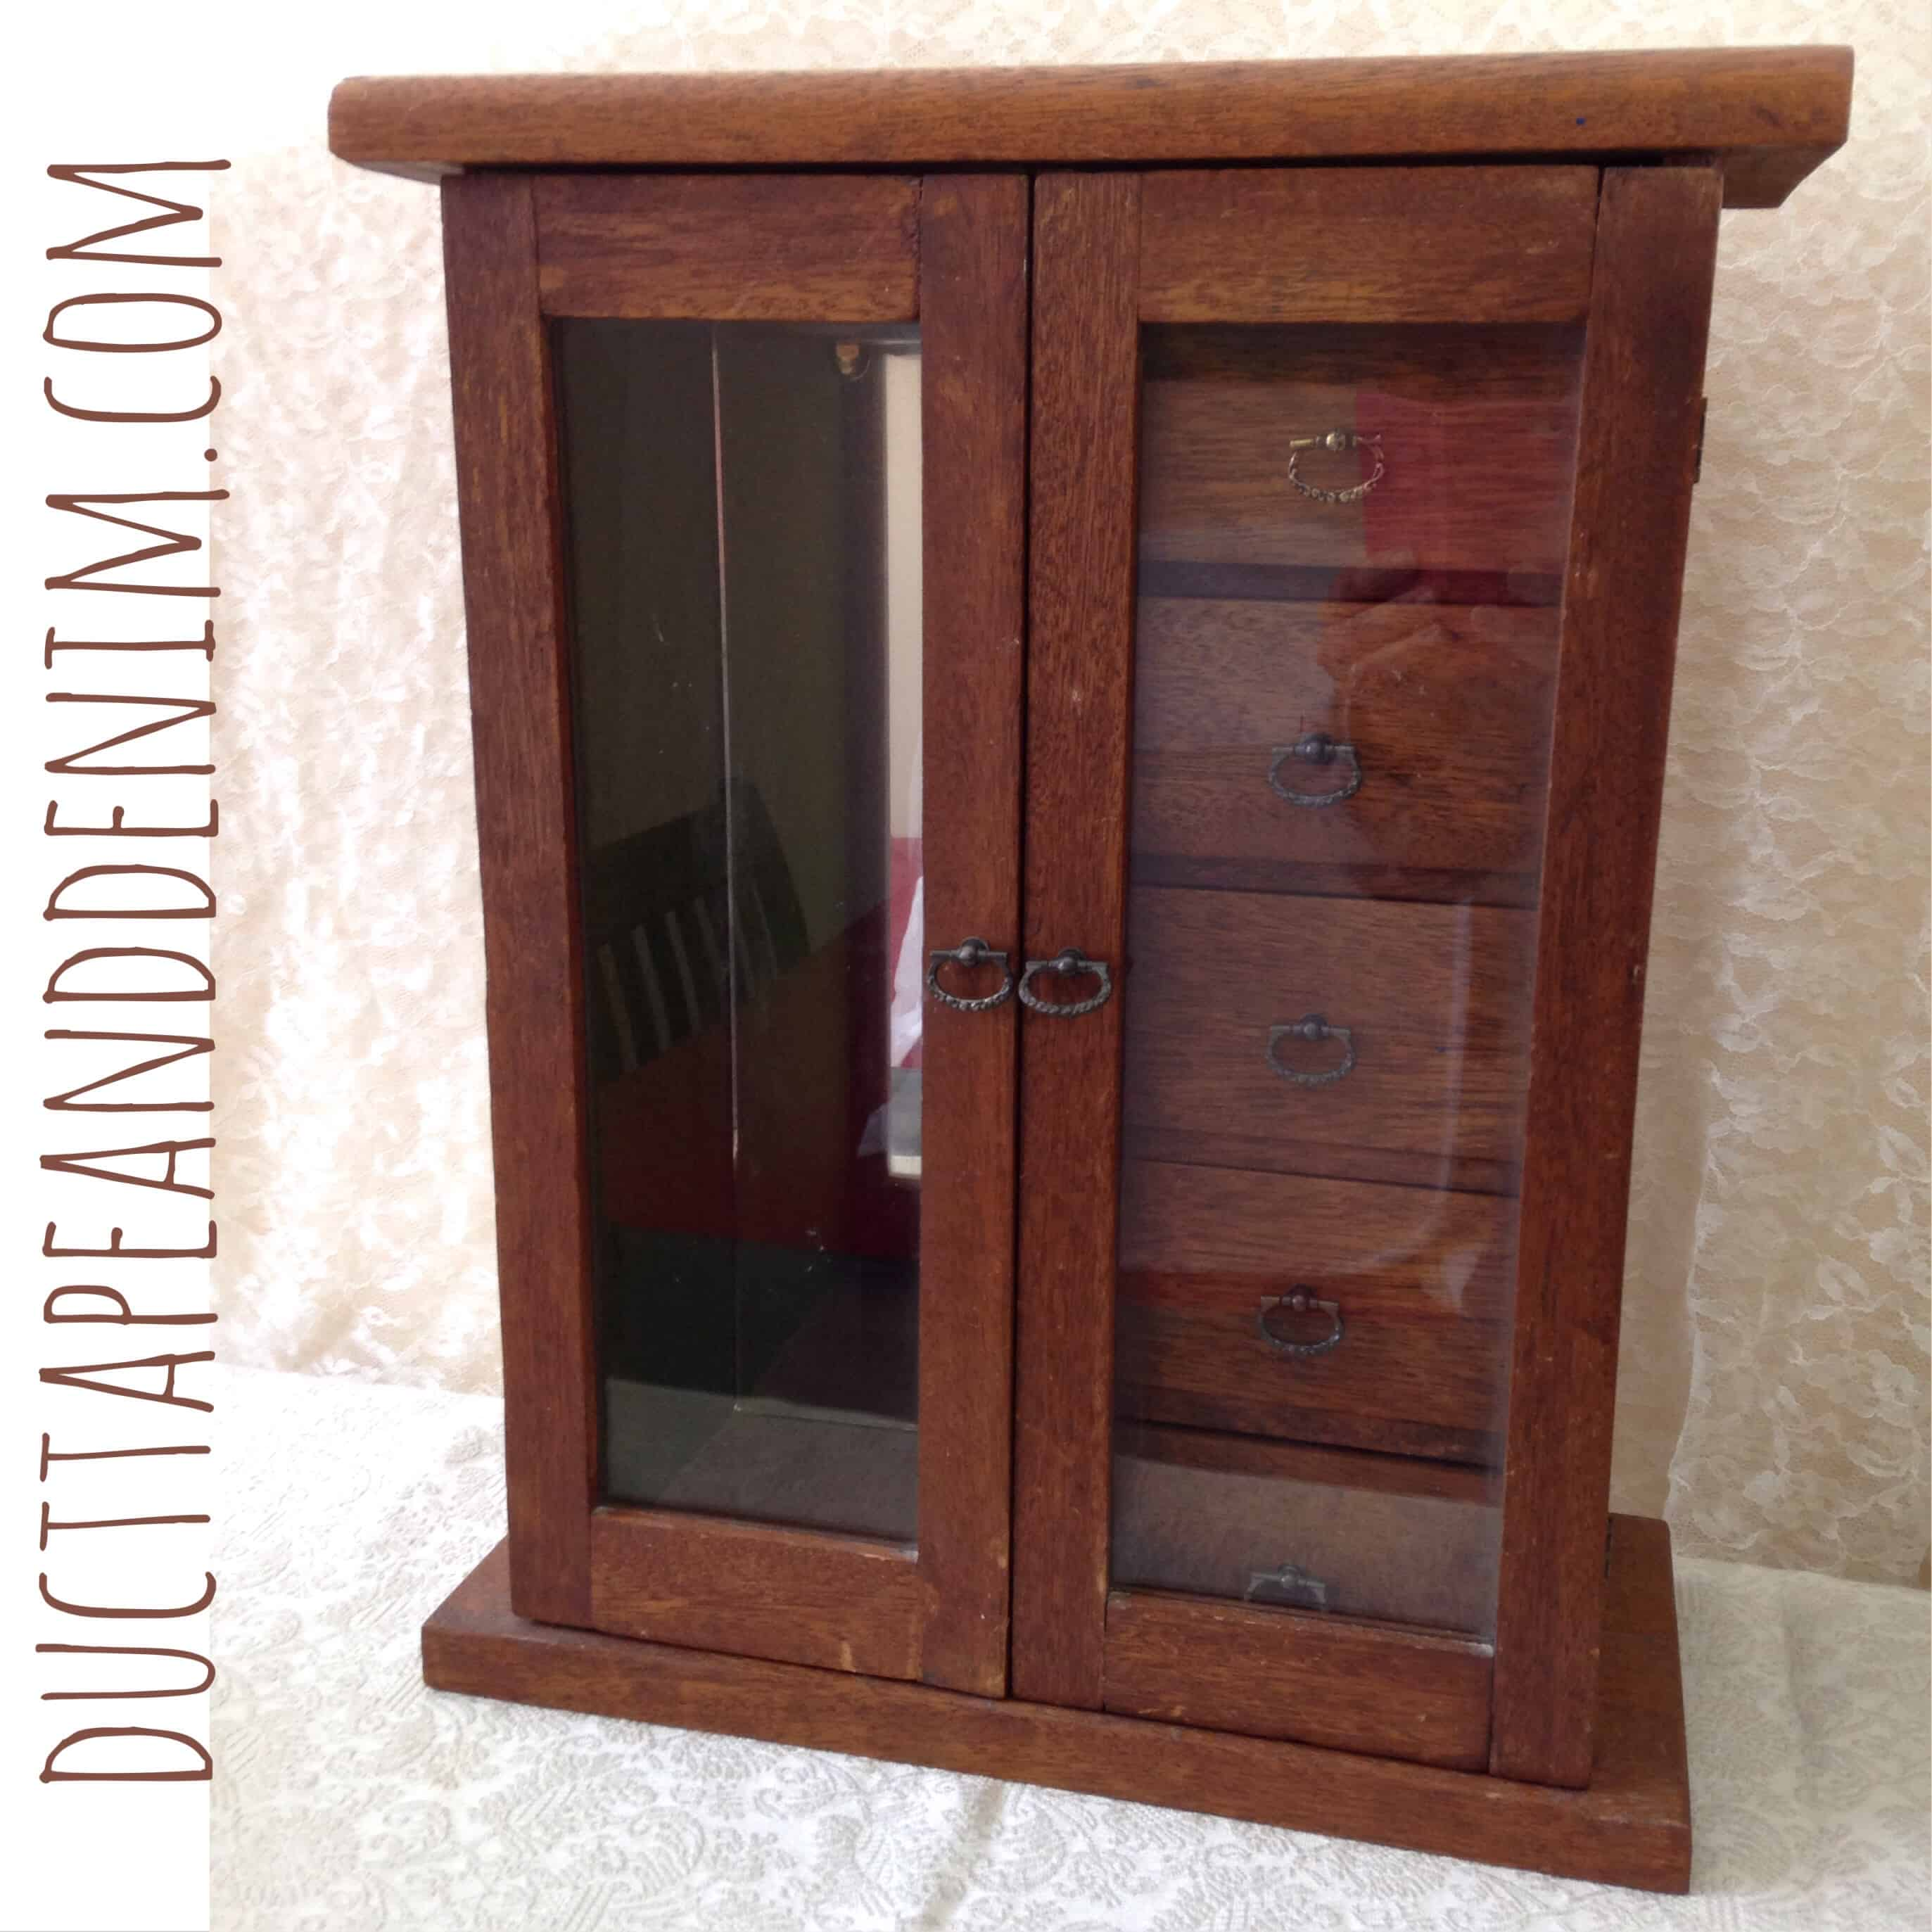 Update on the Wooden Jewelry Cabinet… Makes it Even MORE Amazing!